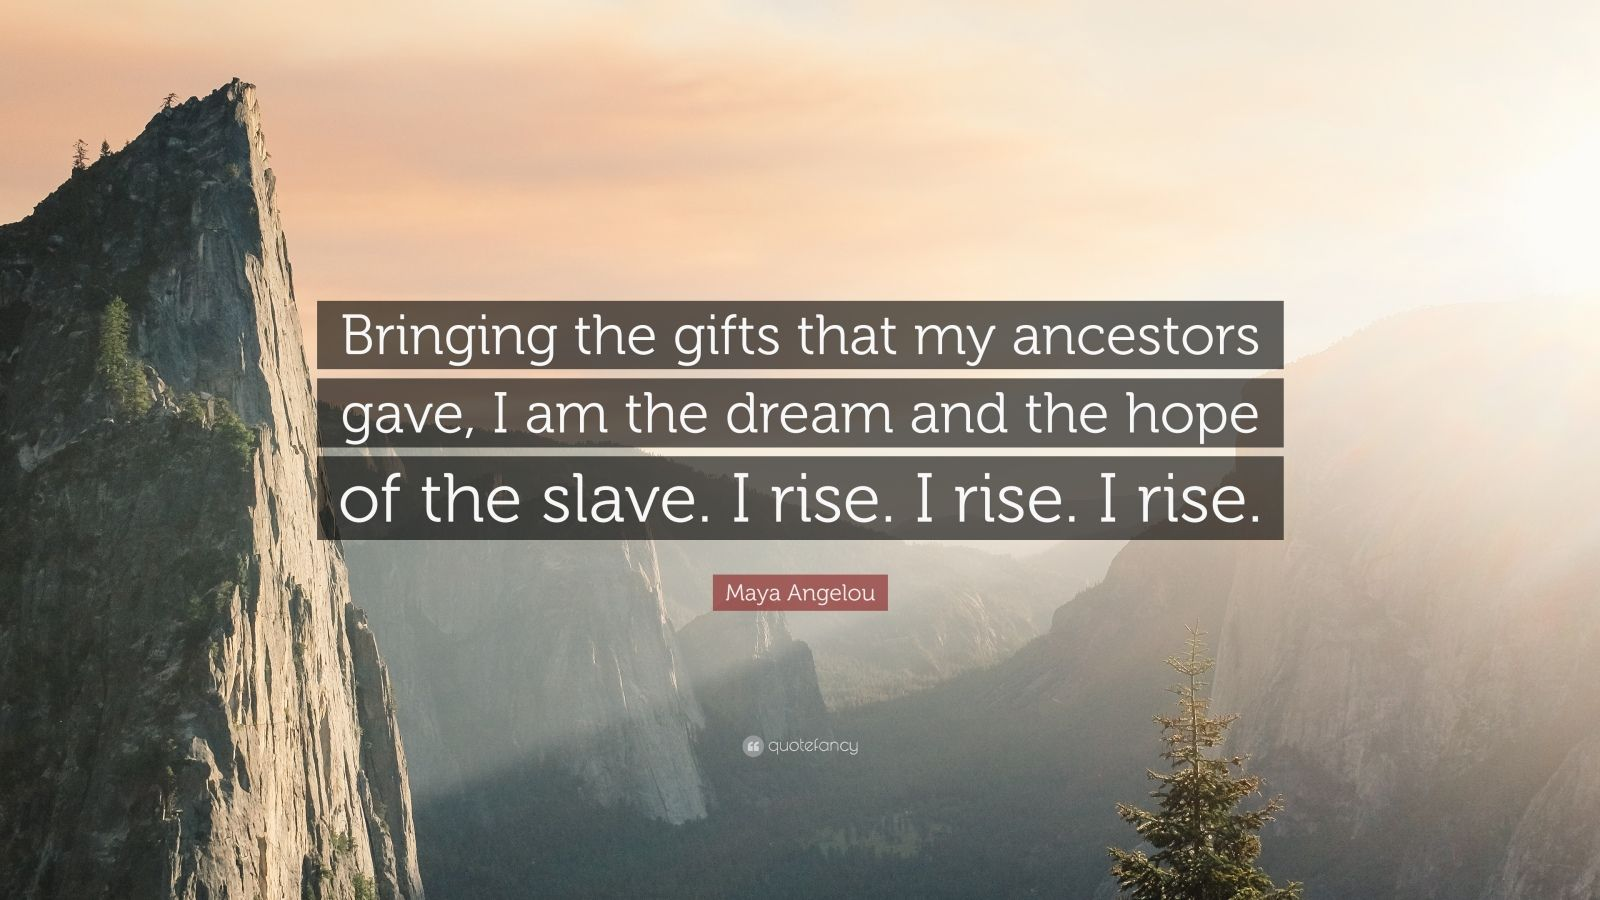 """Maya Angelou Quote: """"Bringing the gifts that my ancestors gave, I am the dream and the hope of the slave. I rise. I rise. I rise."""""""